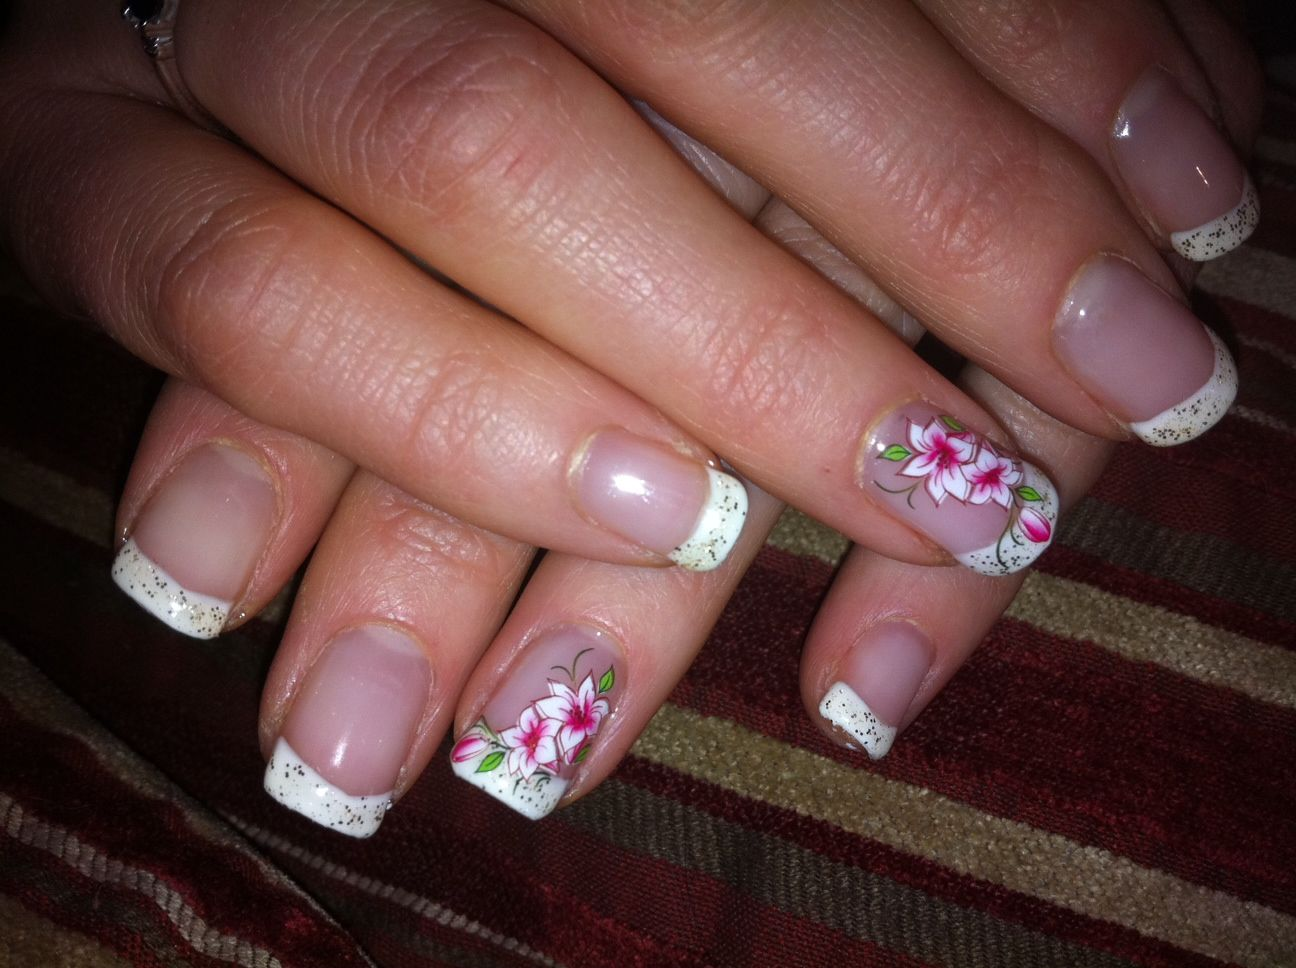 10 best images about Manicure French Nail Art on Pinterest | Nail ...